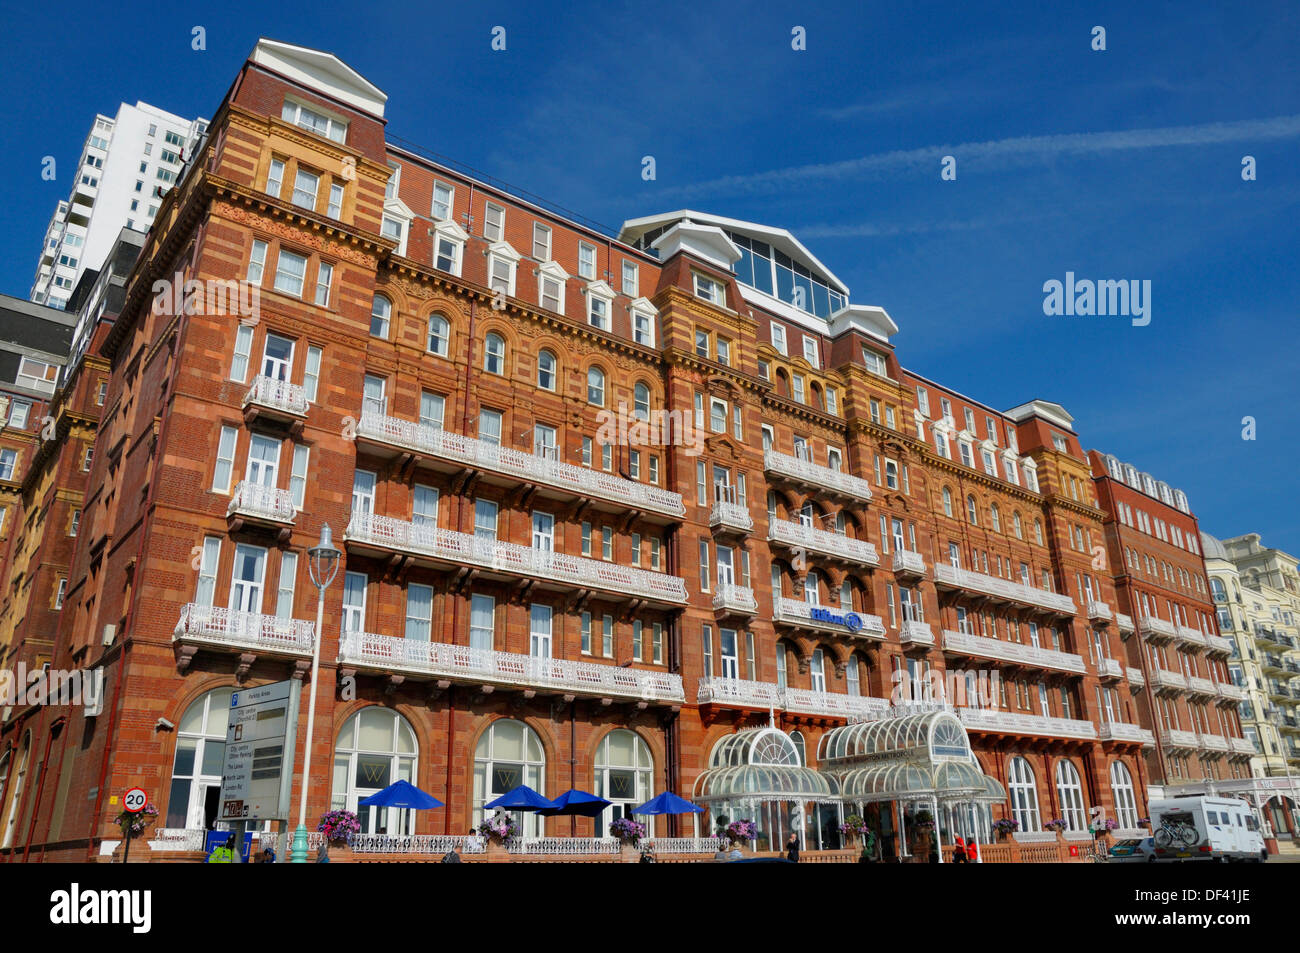 Brighton, East Sussex, England, UK. Hilton Brighton Metropole Hotel - Stock Image